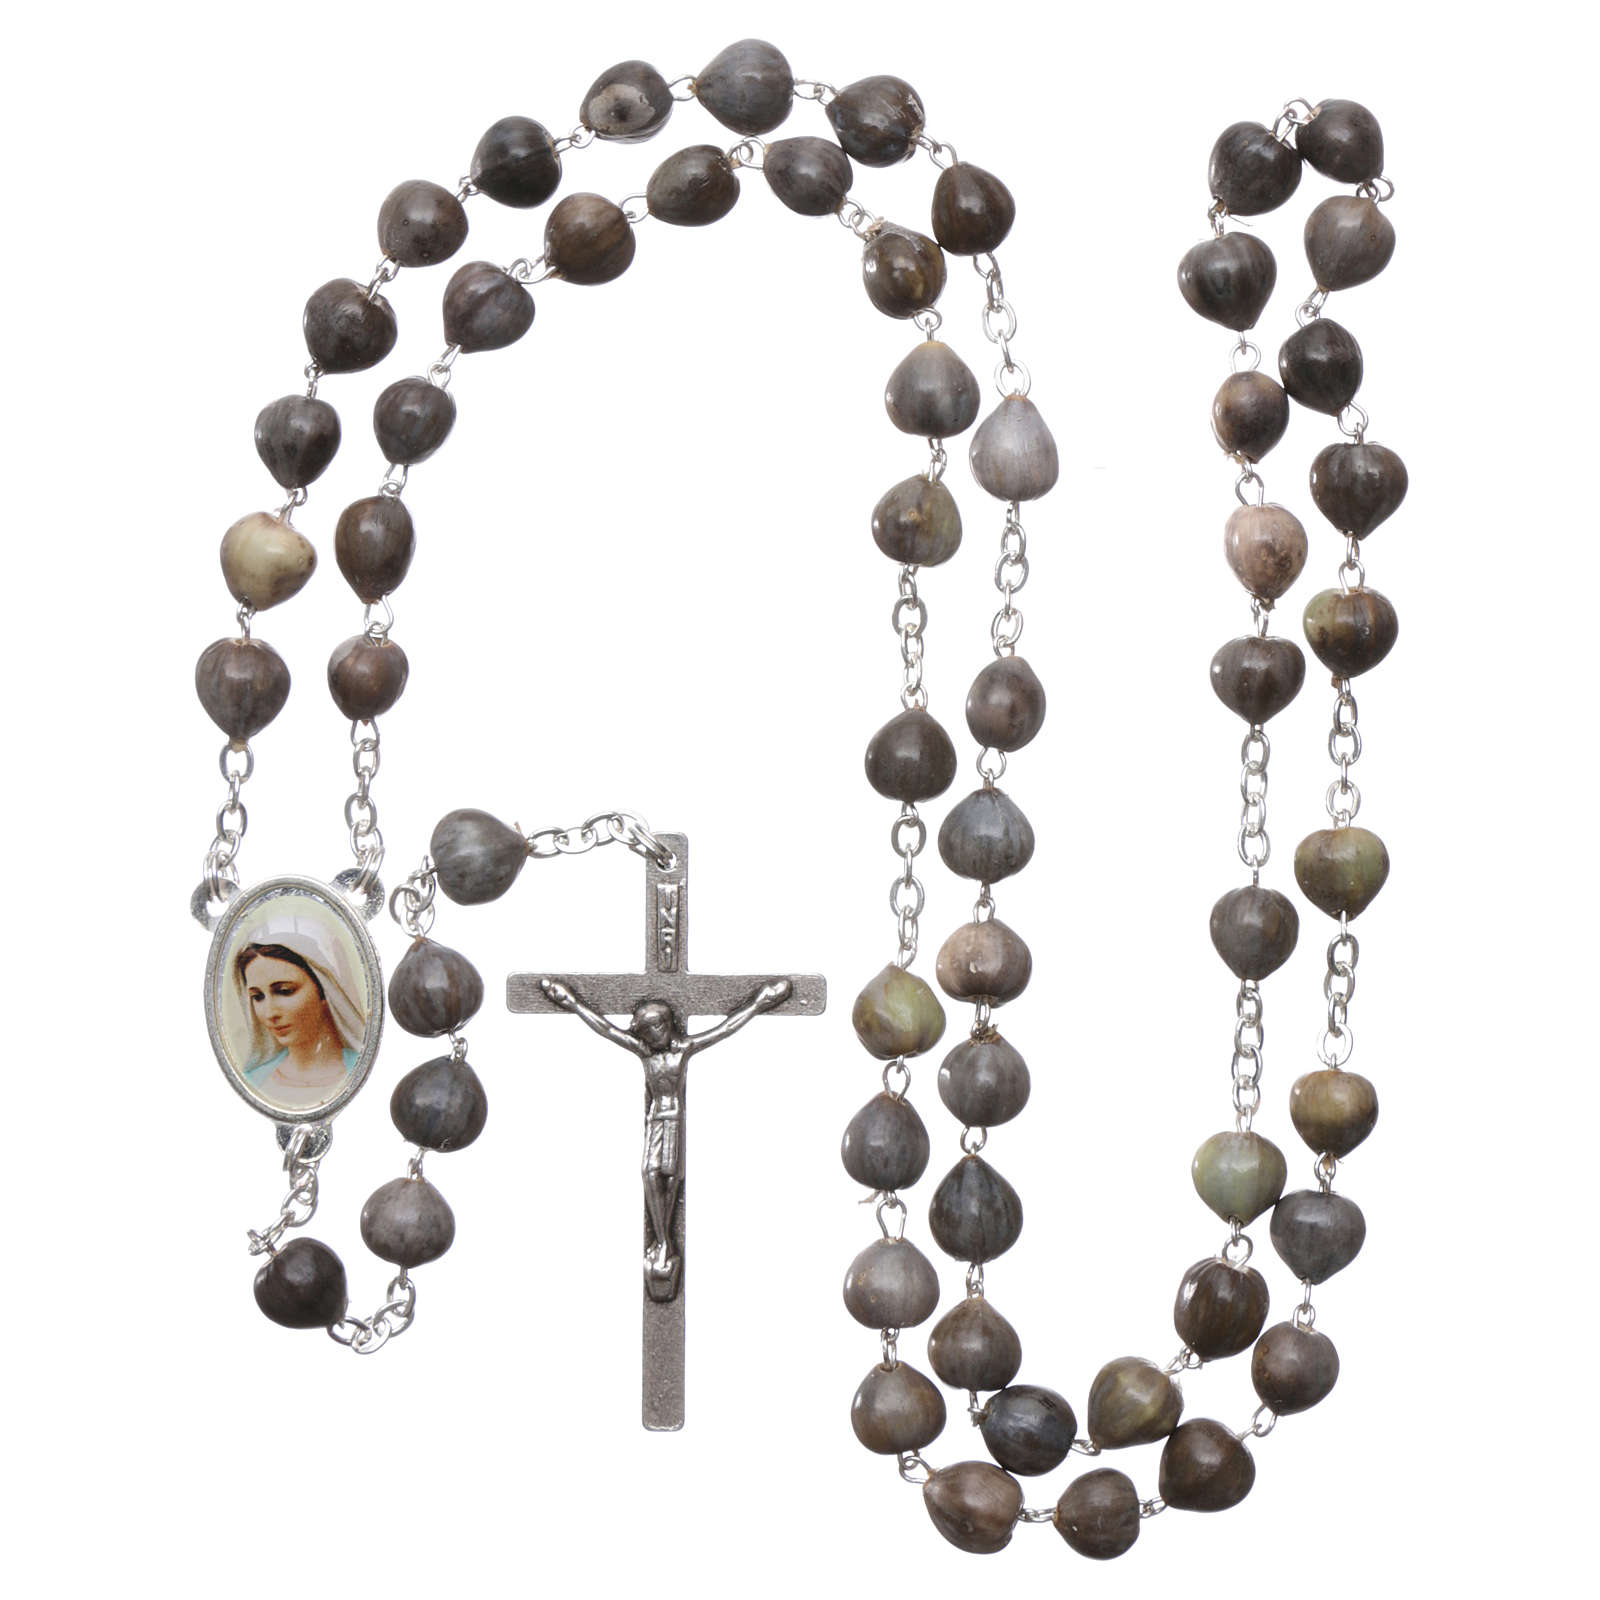 Medjugorje rosary with Job's Tears, chain and cross 4